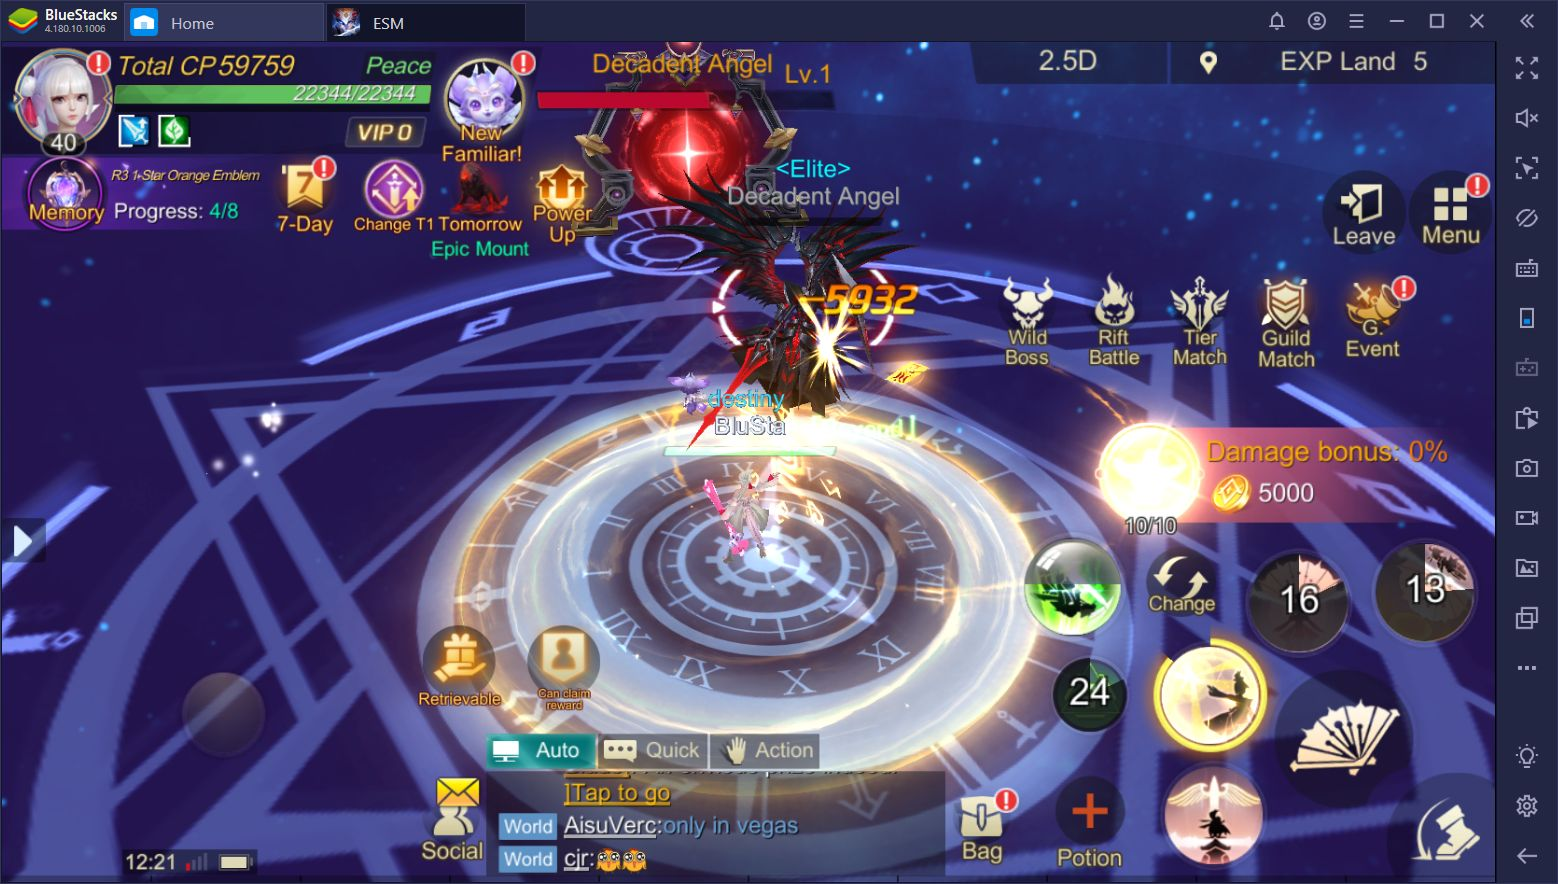 Eternal Sword M on PC - Beginner's Guide for Daily Challenges and Upgrades